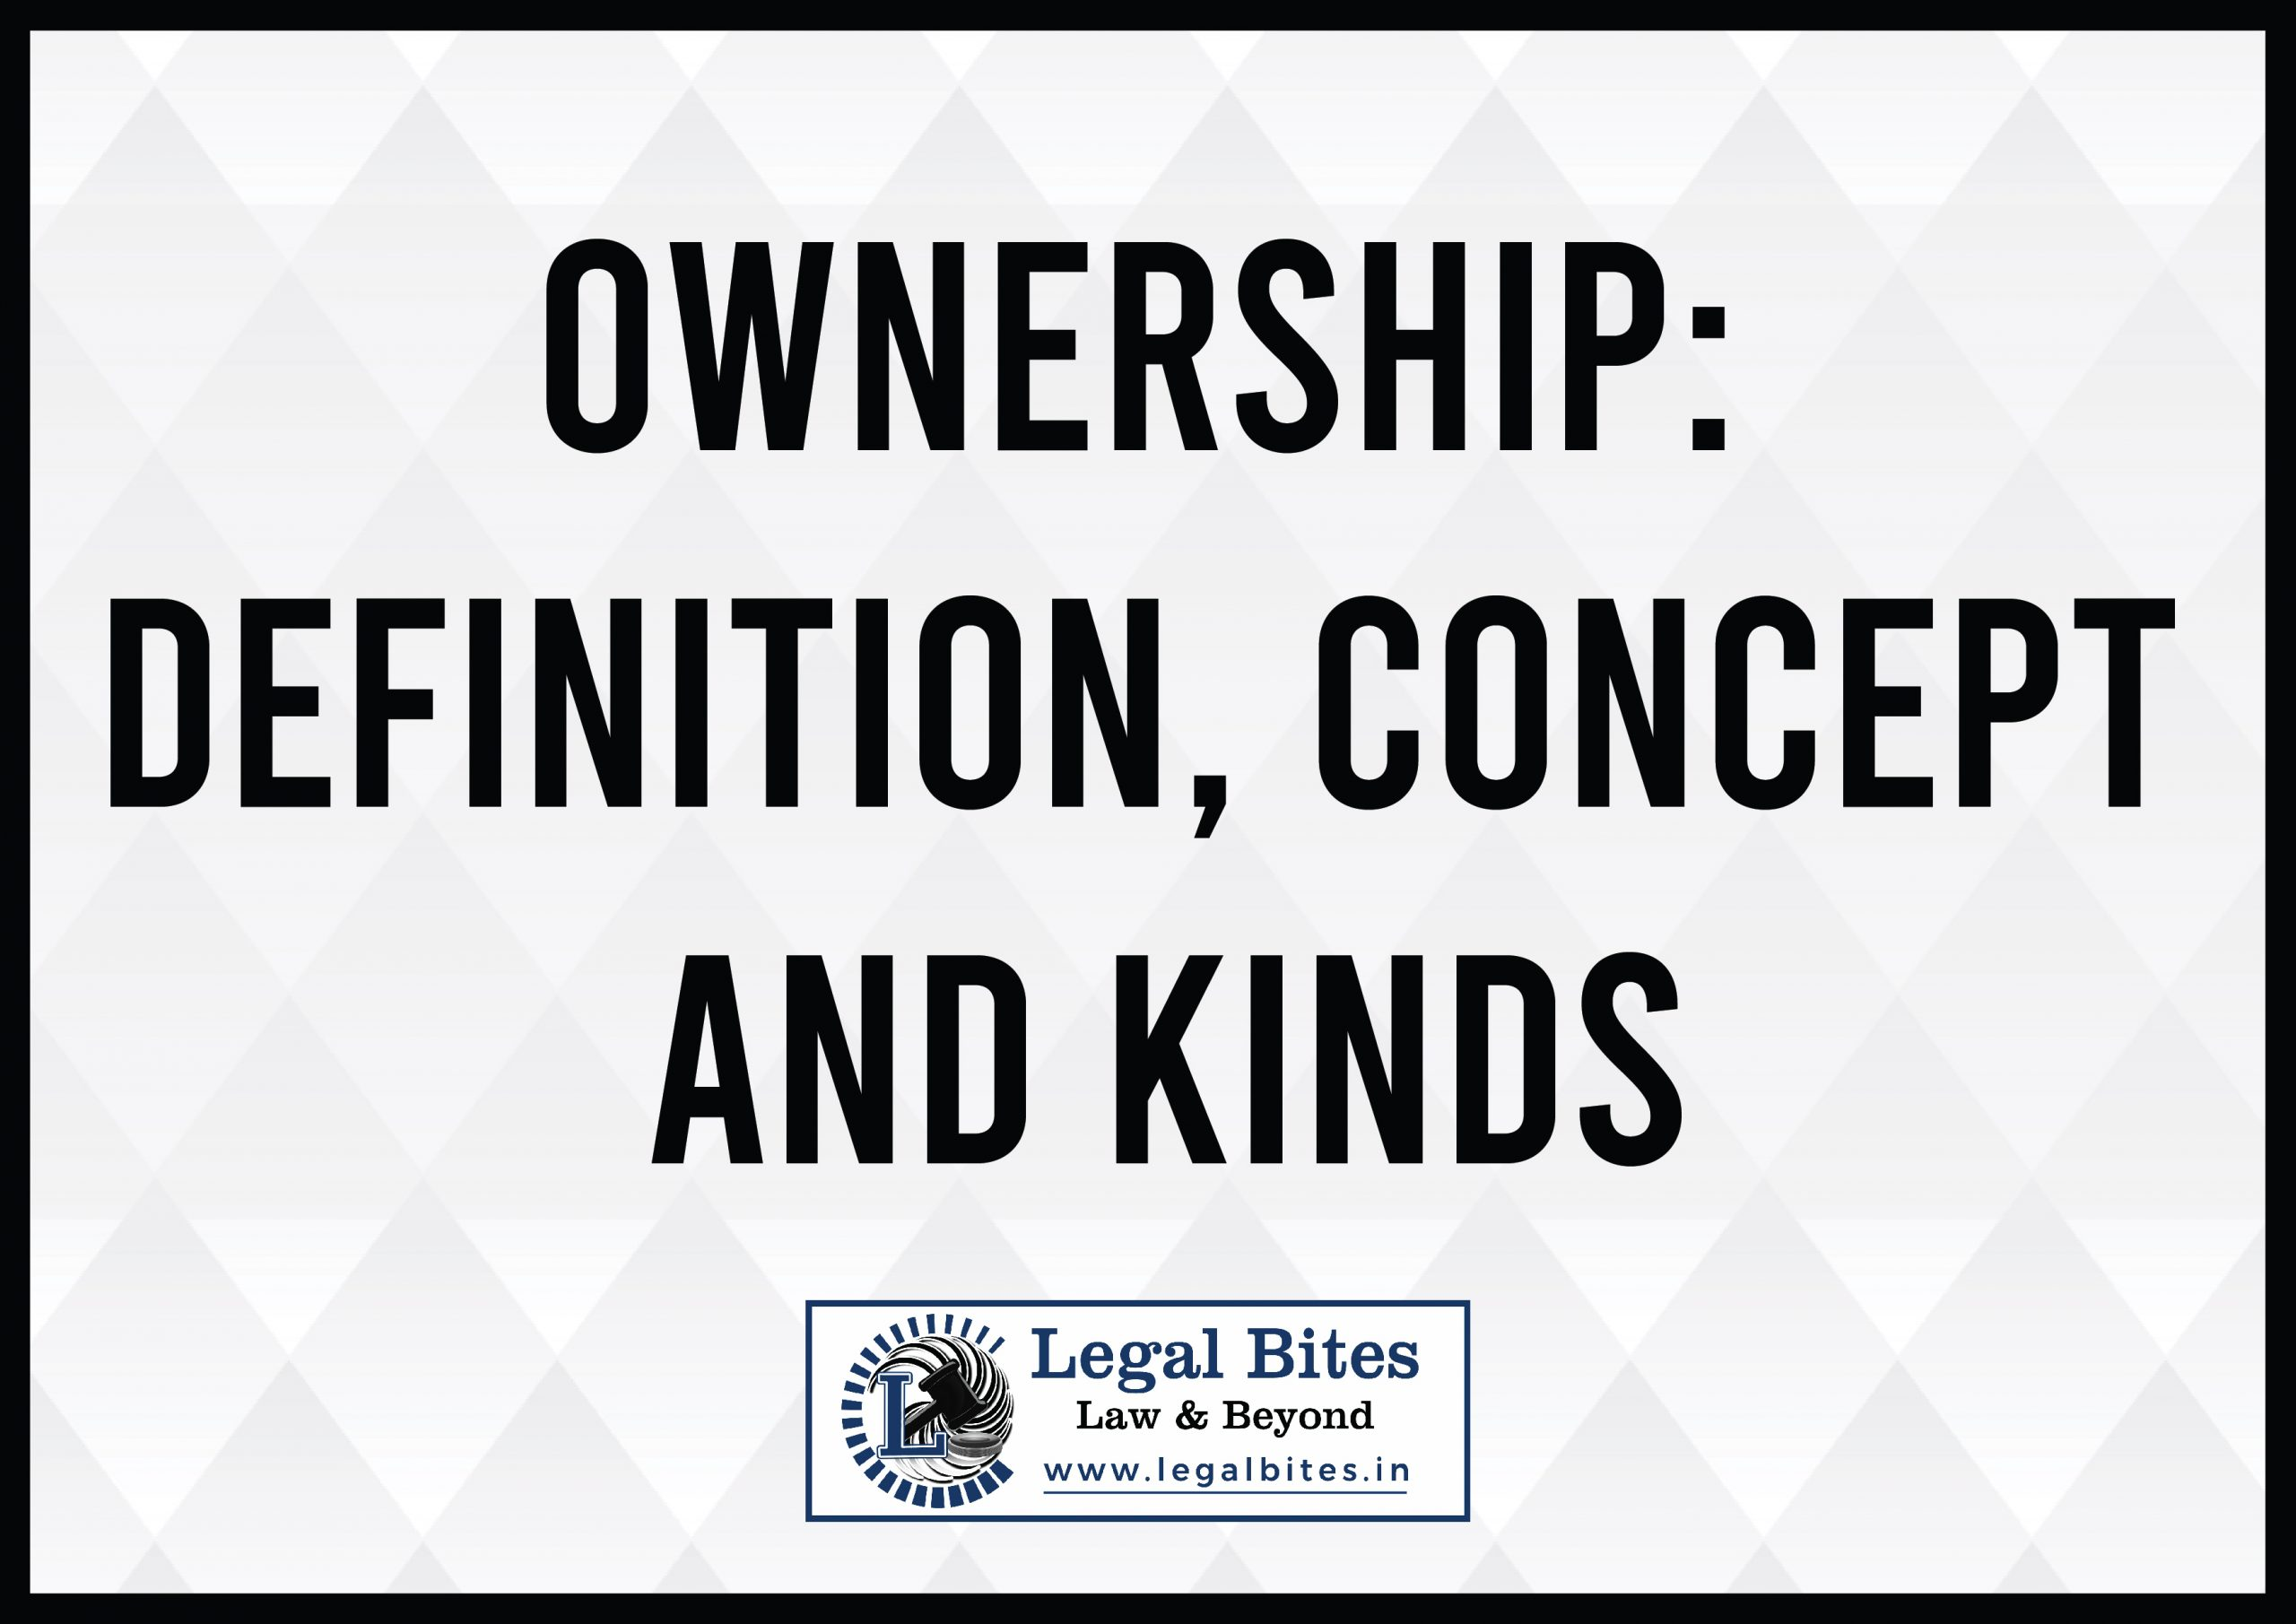 Ownership: Definition, Concept and Kinds